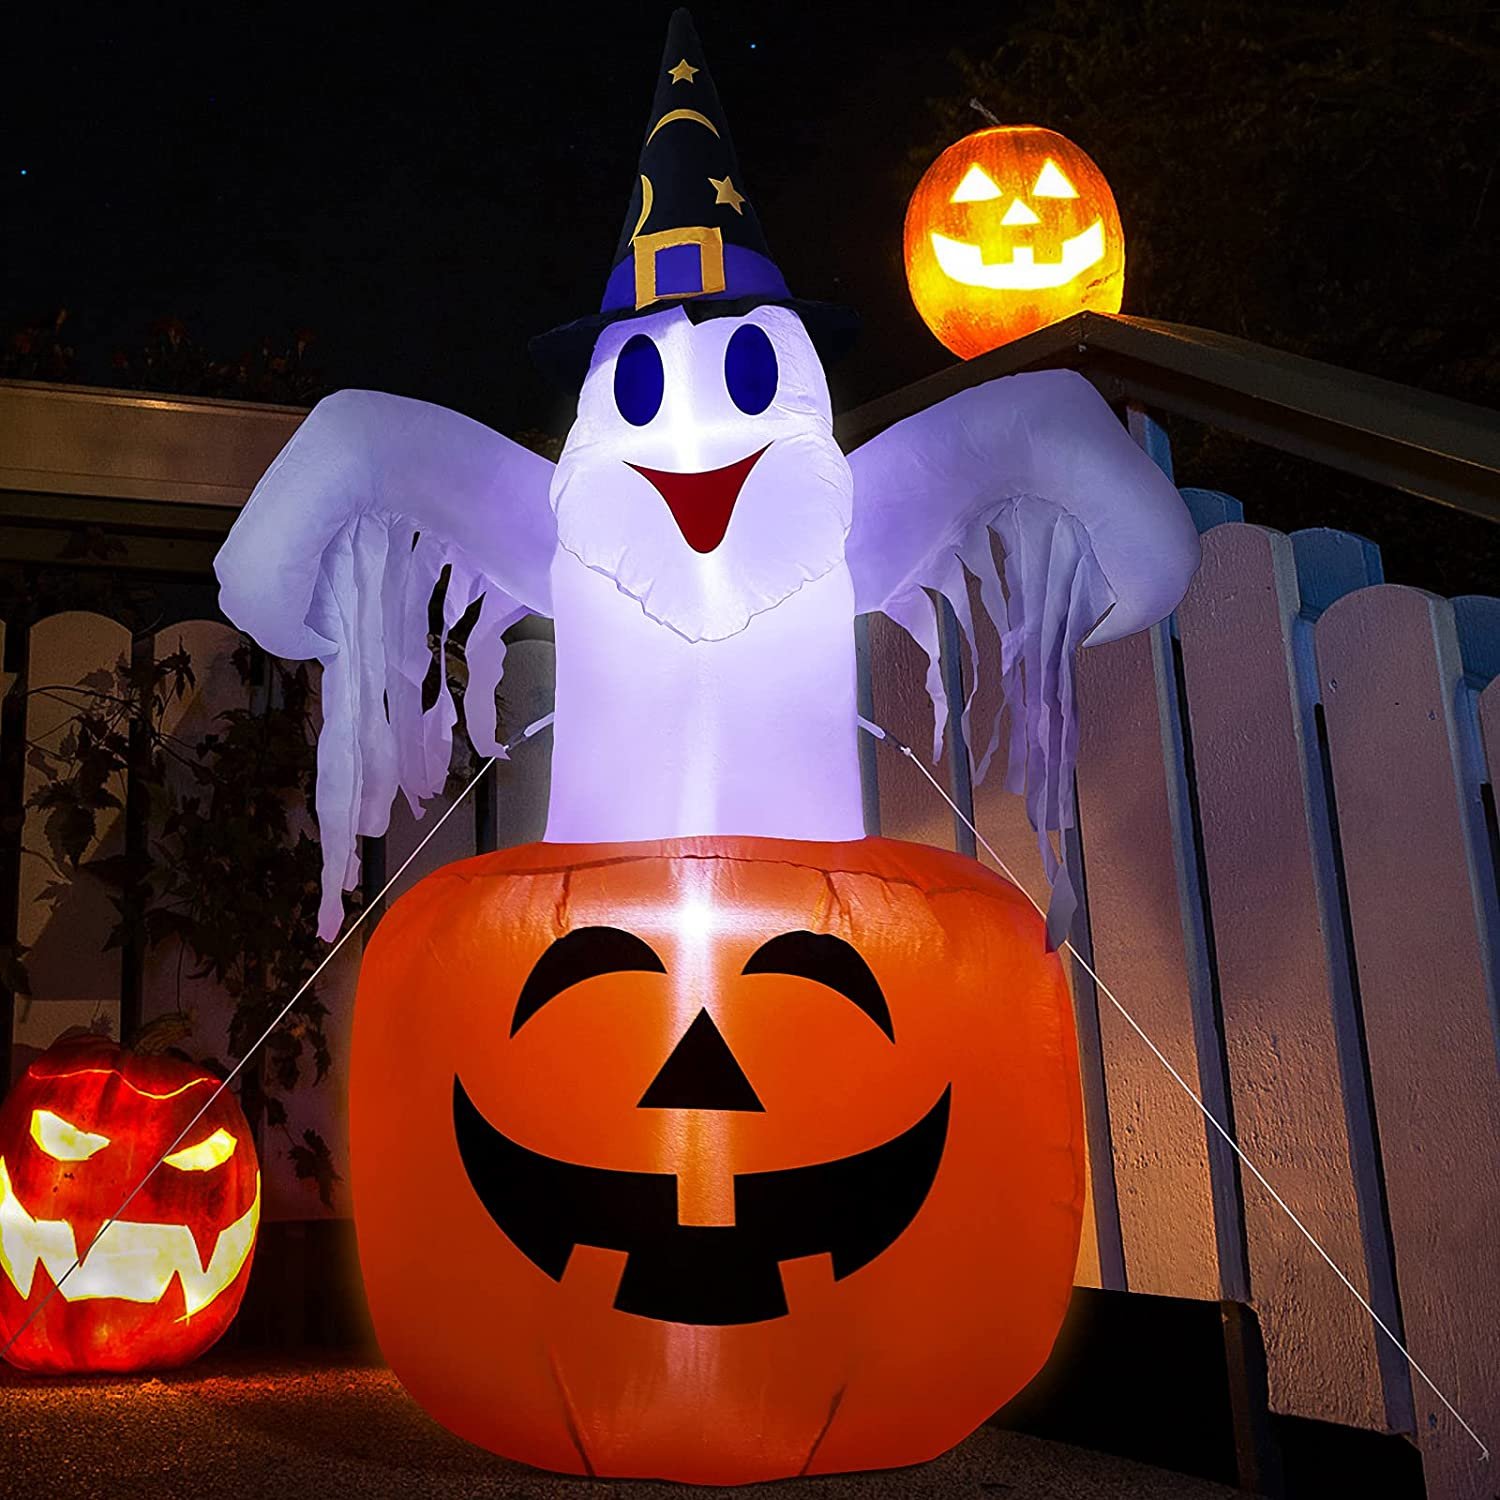 WDERNI Max 52% Choice OFF Halloween Inflatable Outdoor Cute Blo Pumpkin with Ghost